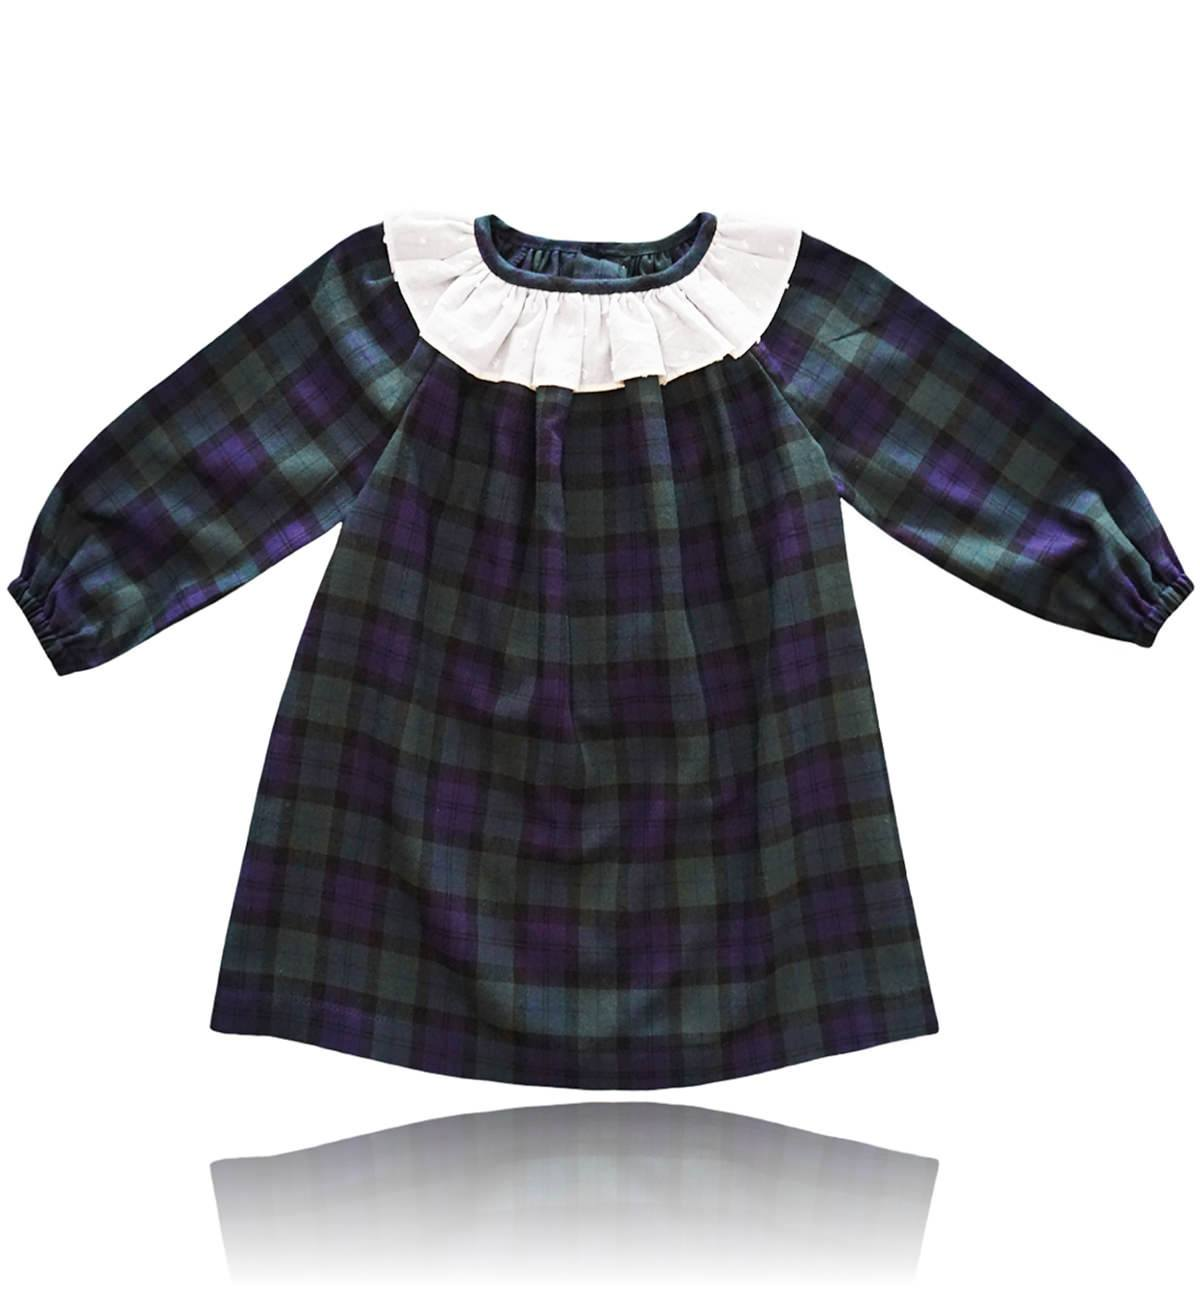 Spanish baby clothes | baby Dress | Navy blue & green check dress |babymaC  - 1